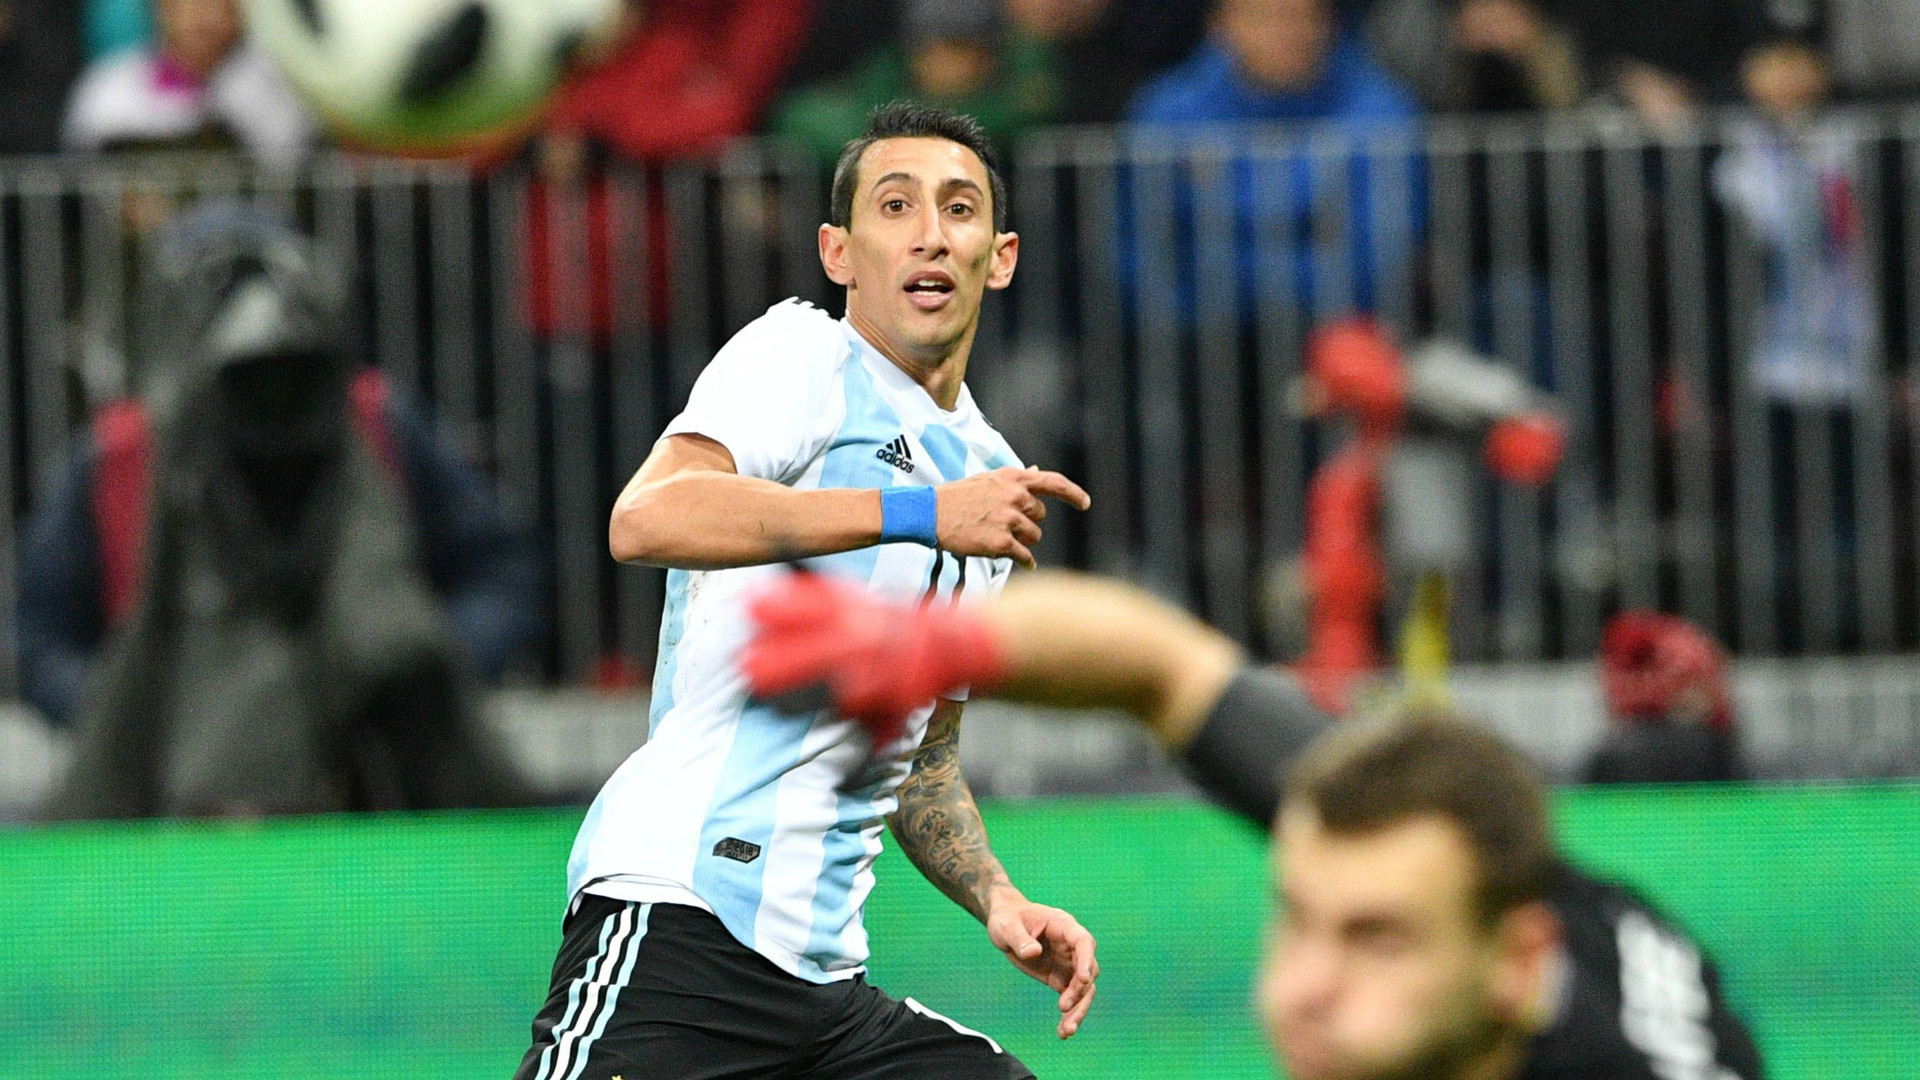 Sergio Aguero 'faints at half-time', taken to hospital during Argentina v Nigeria